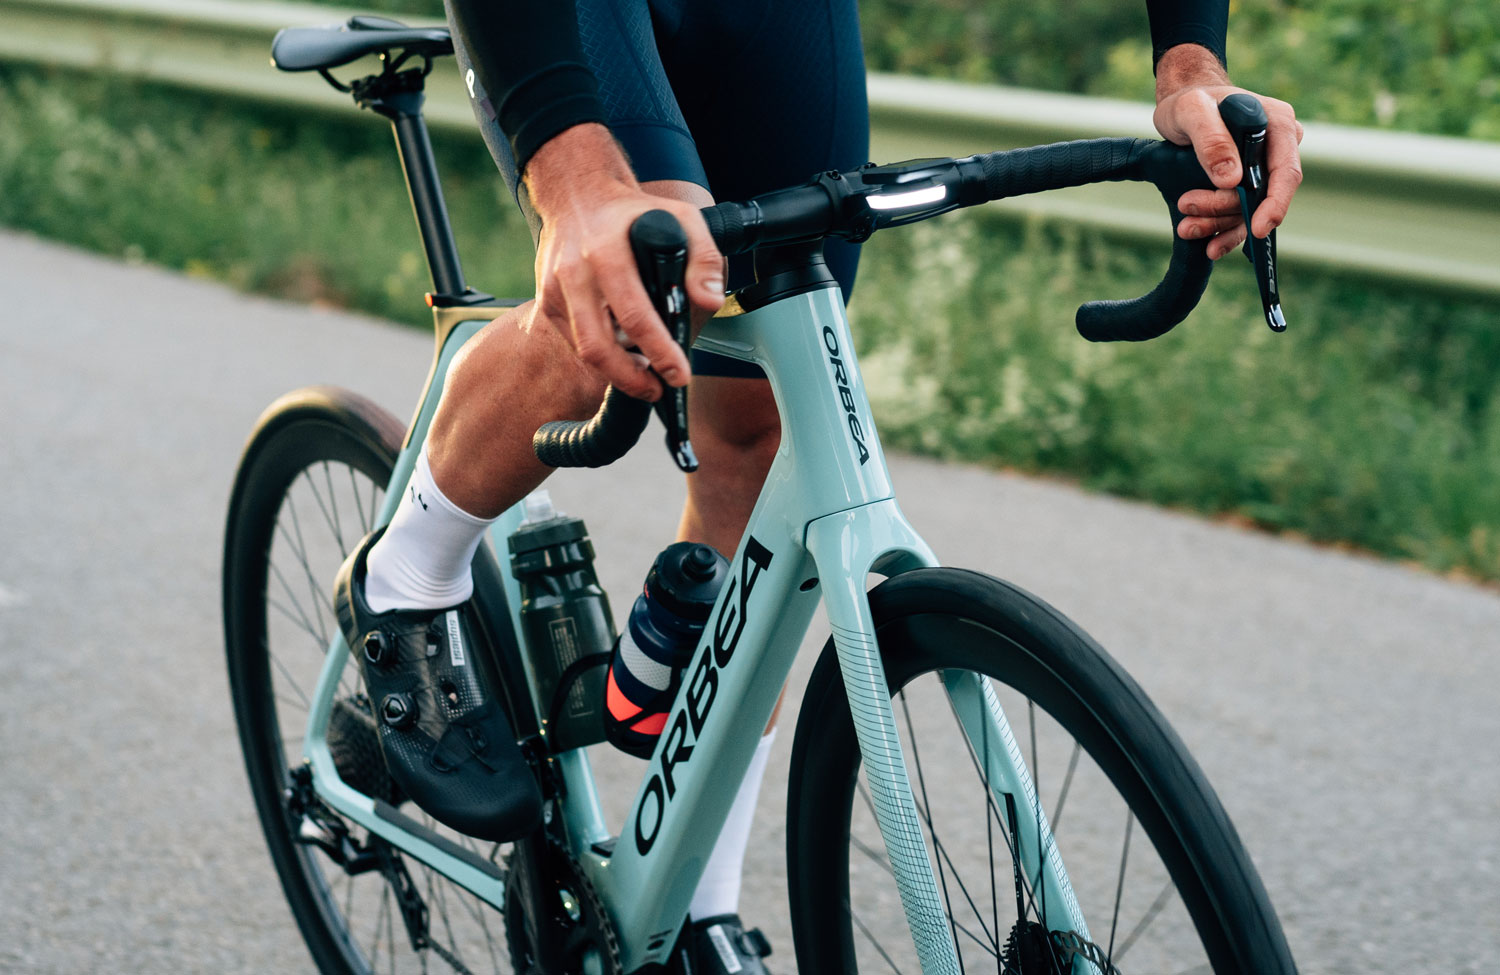 Orbea's new generation of Gain e-bikes is here and it's improved all around!